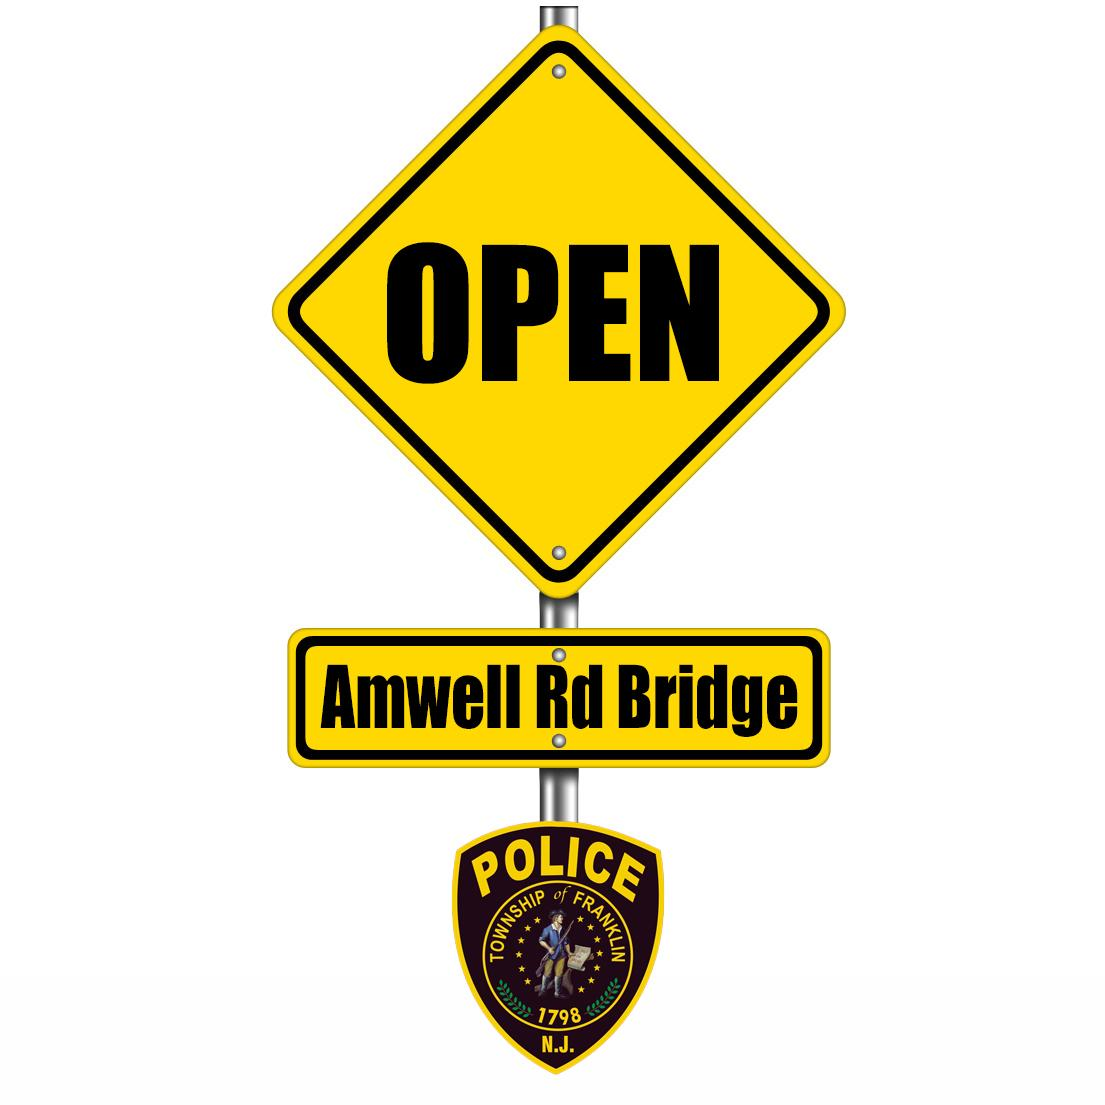 Franklin Twp Pd On Twitter The Bridge On Amwell Rd Is Open Http